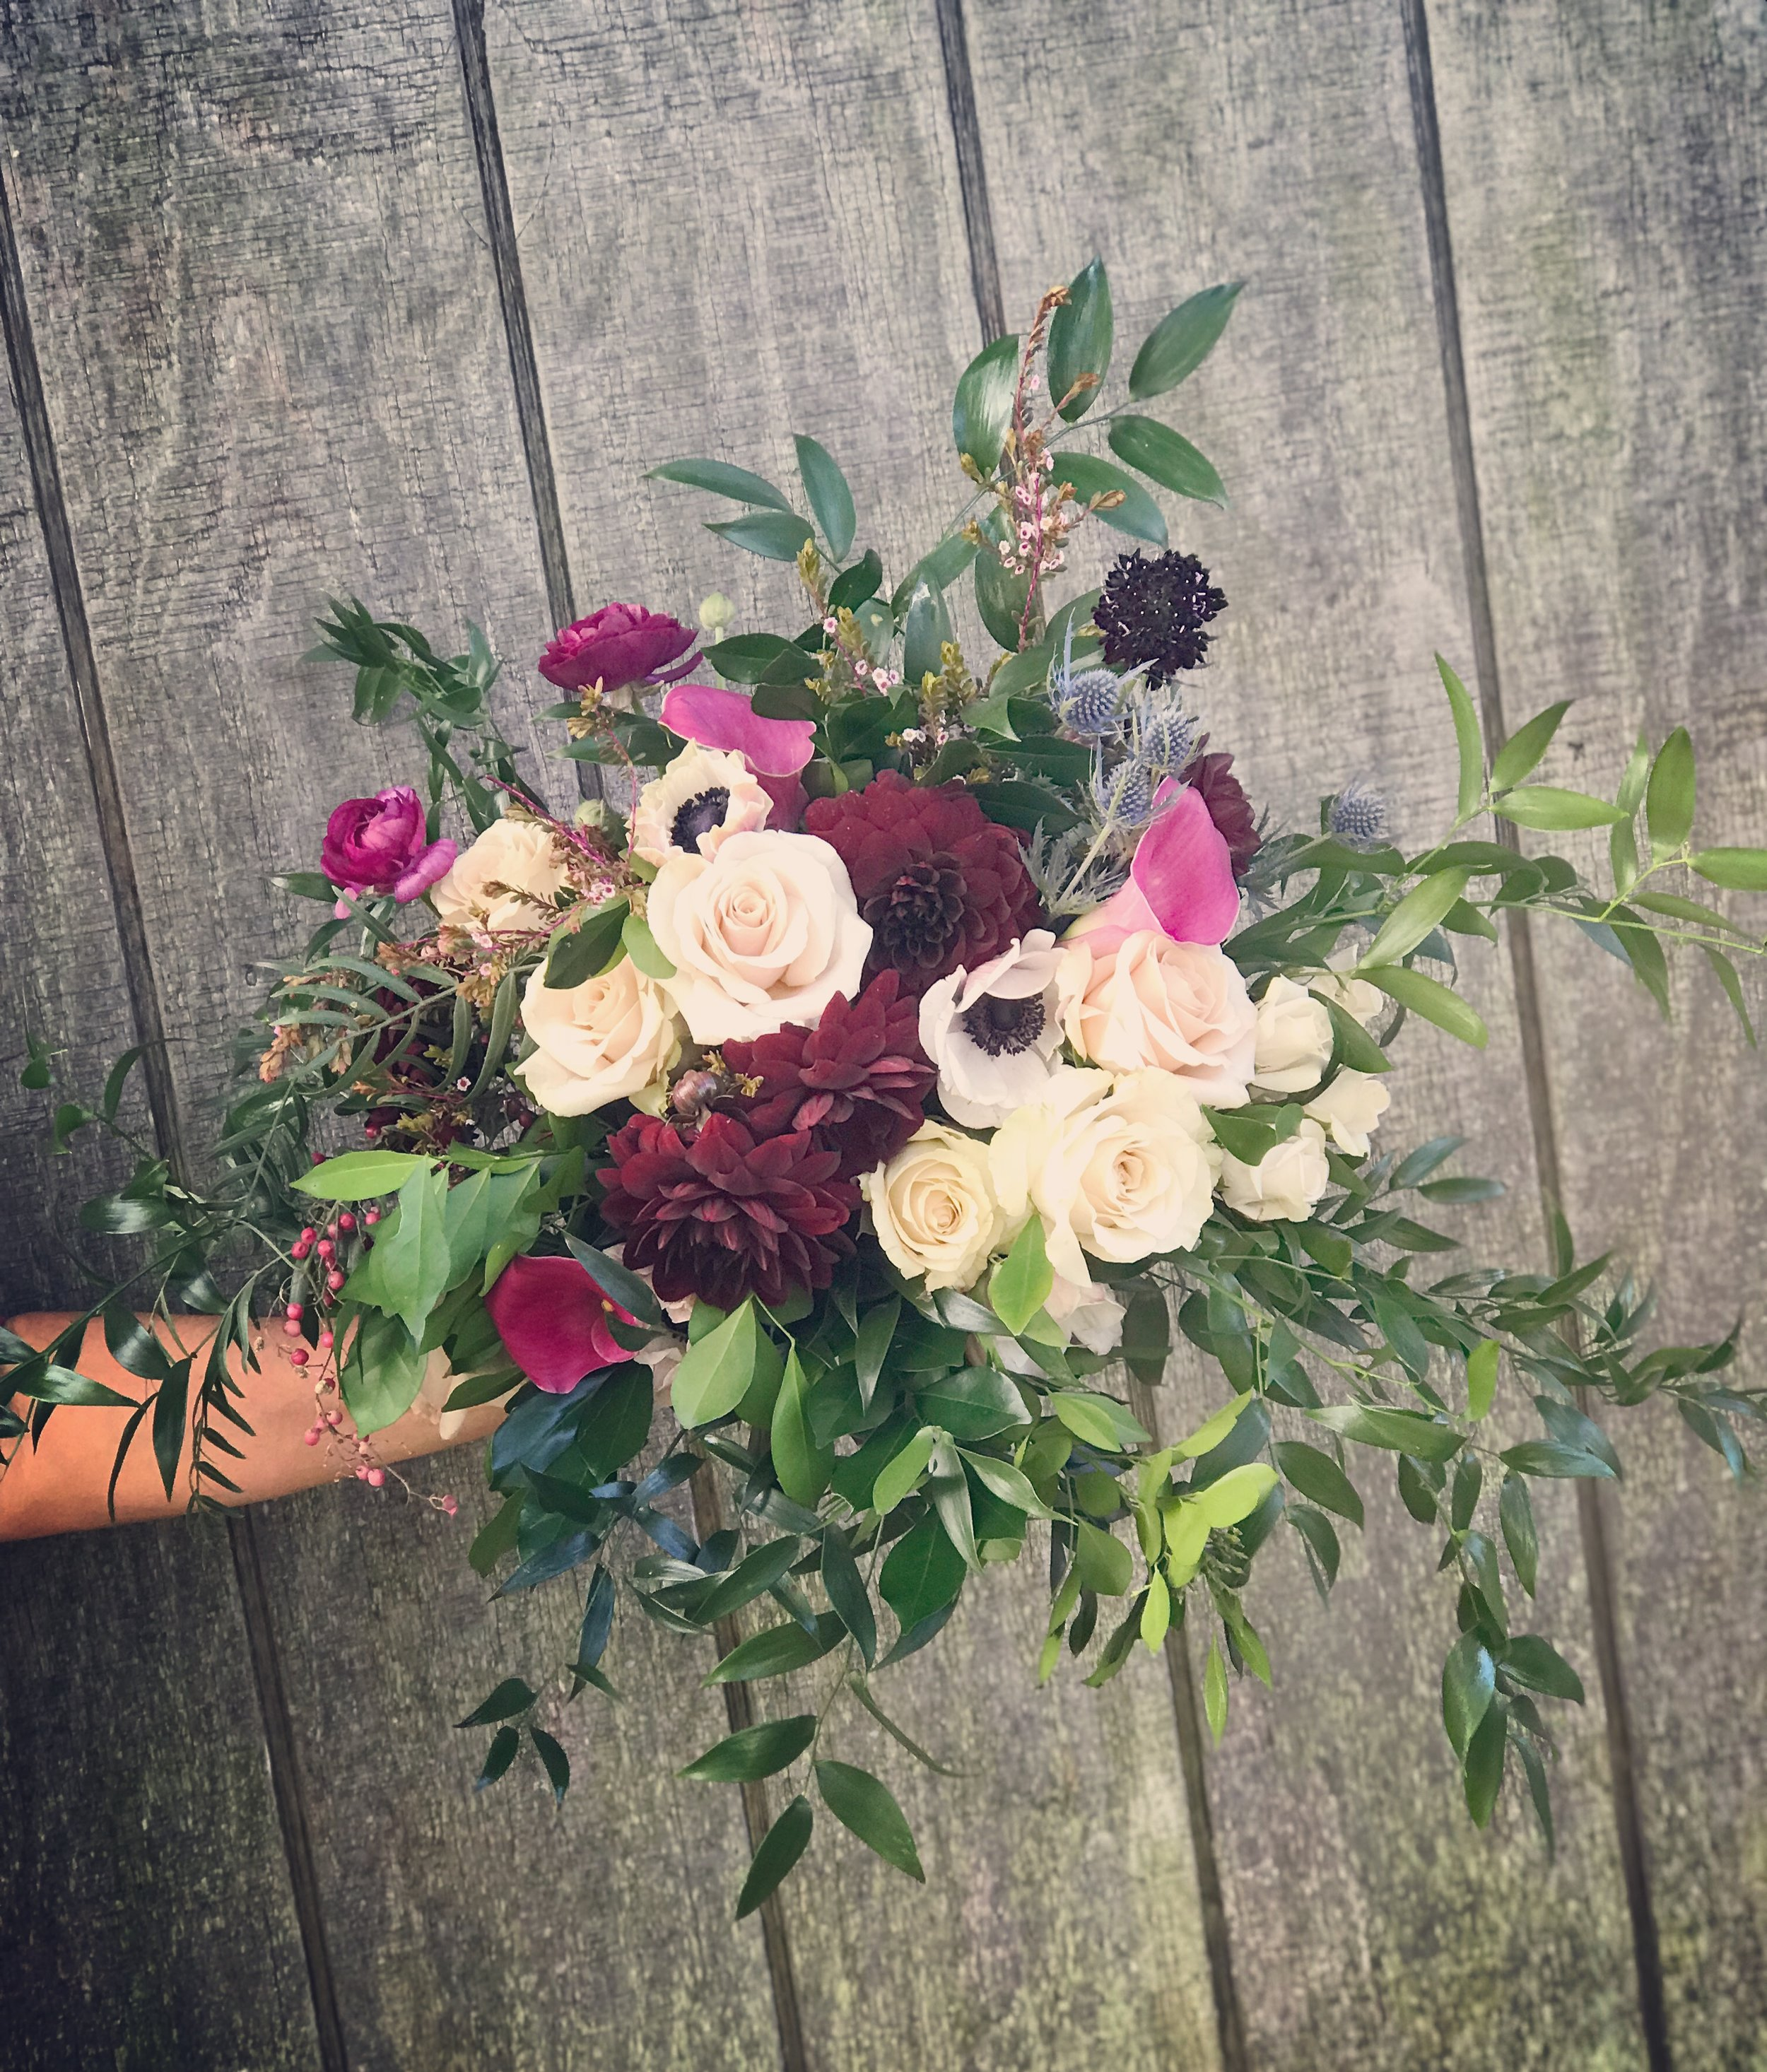 Contact us for a FREE, no obligation estimate513-839-1352 or bellaroseflowerco@gmail.com -